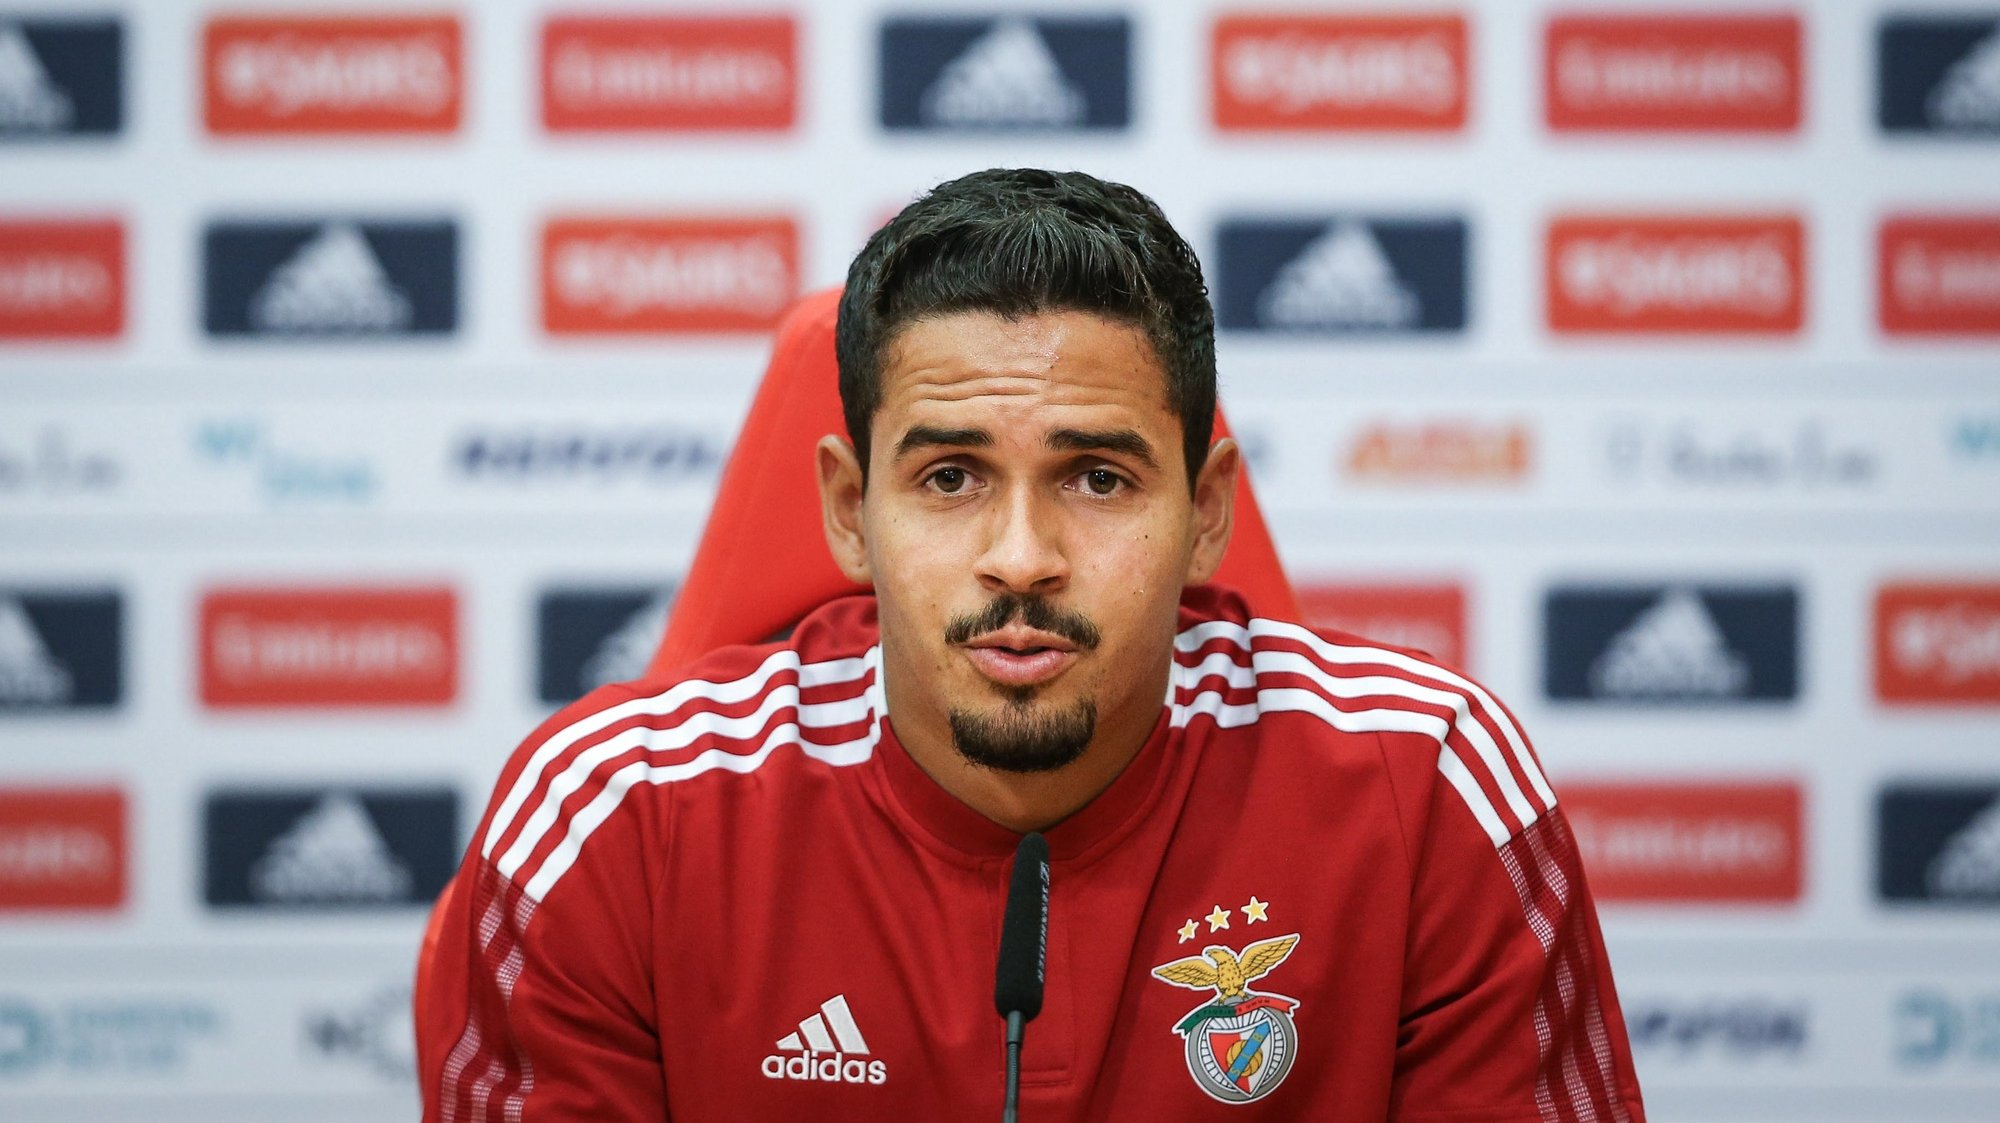 epa09407389 Benfica's player Lucas Verissimo attends a press conference at the the Seixal training center in Seixal, Portugal, 09 August 2021. Benfica will face Spartak Moscow in their UEFA Champions League Third qualifying round, second leg soccer match at Luz stadium in Lisbon on 10 August 2021.  EPA/RODRIGO ANTUNES